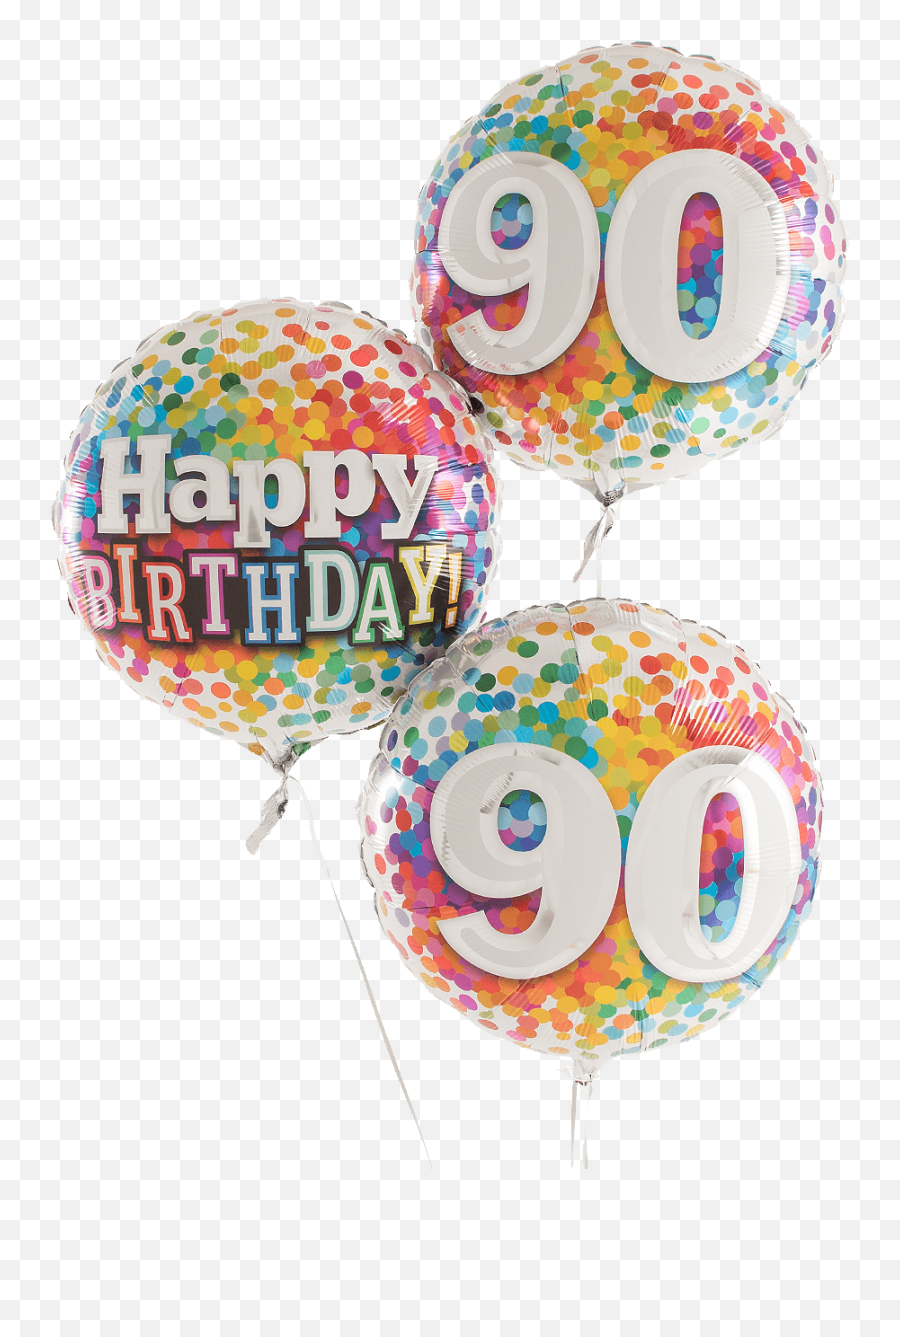 Party Supplies party shop uk 90th Happy Birthday Blue Filled - Transparent 70th Birthday Balloons Emoji